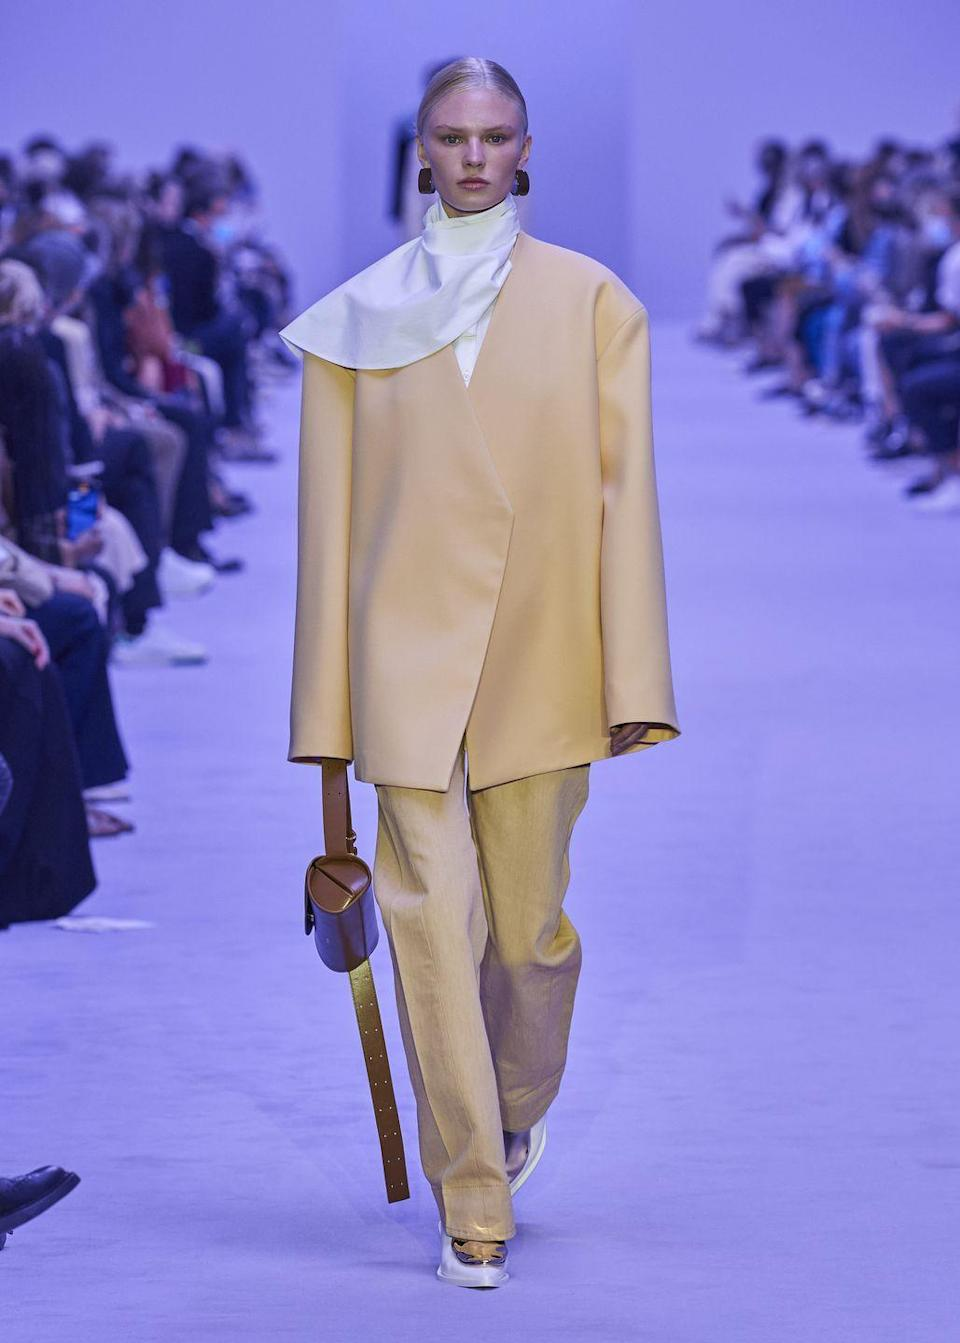 <p>Lucie and Luke Meier brought their trademark timelessness to Jil Sander's latest collection, sending plenty of neutral, tailored or slinky silk pieces down the catwalk. However, there were some more playful moments in the collection too, including some bright pops of purple, yellow and even a dash of animal print.</p>